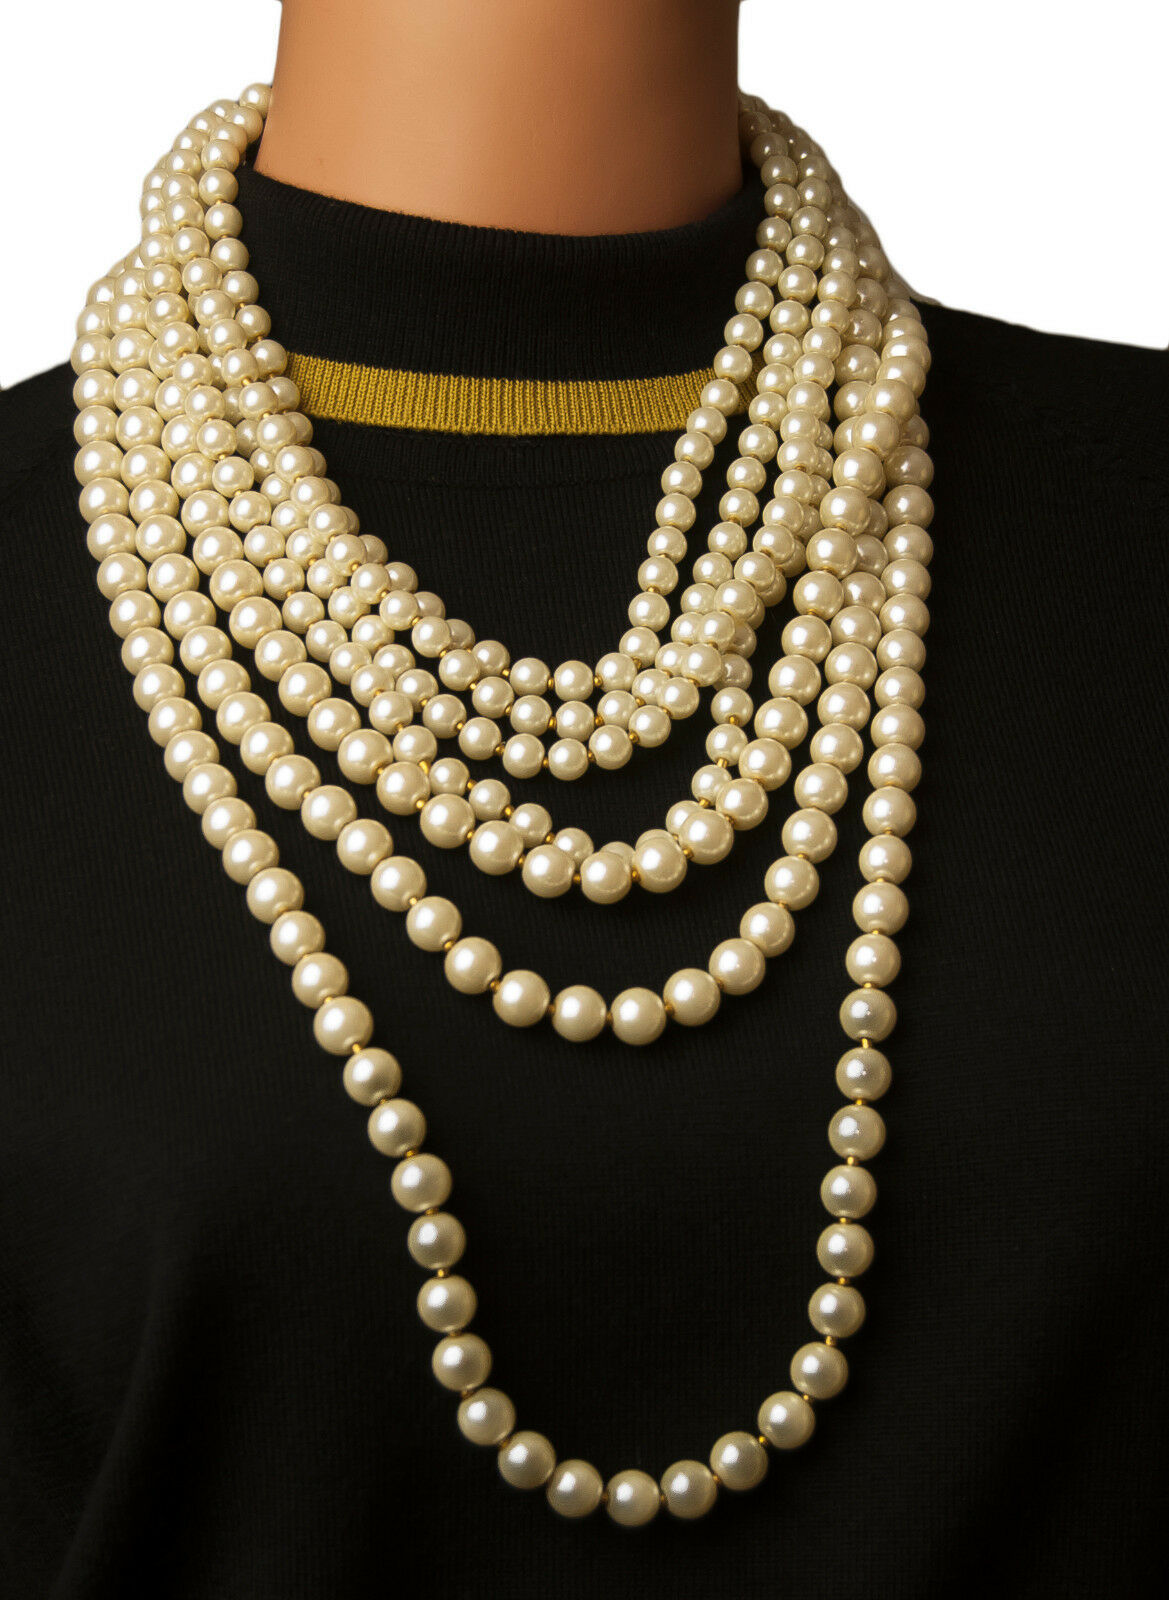 """New Trendz 7 strand 16"""" graduated faux pearl necklace - $14.50"""